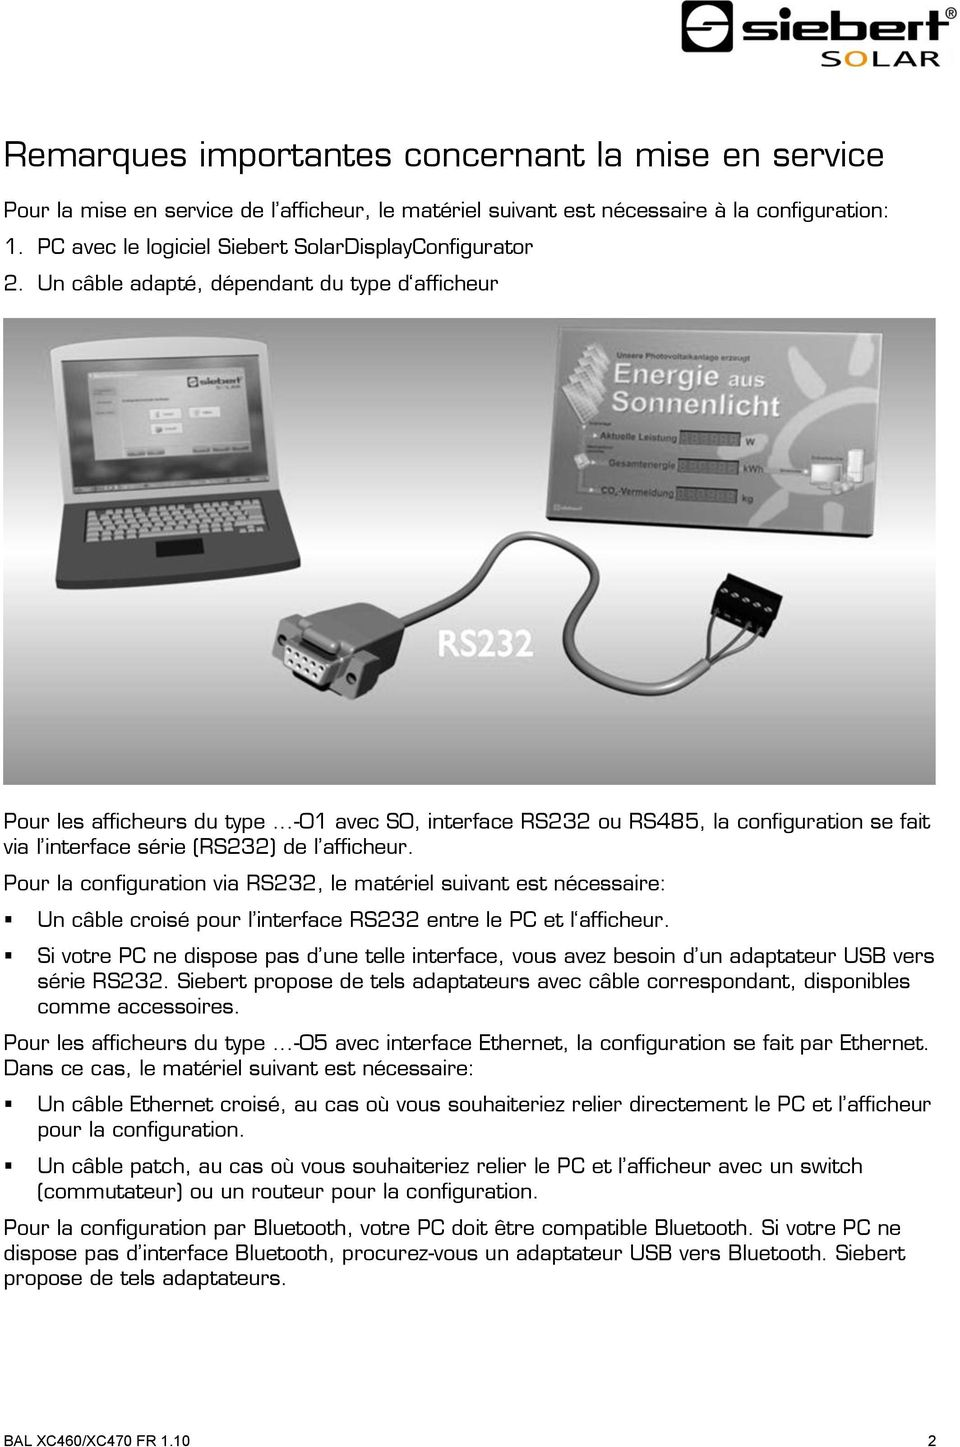 ..-01 avec S0, interface RS232 ou RS485, la configuration se fait via l interface série (RS232) de l afficheur.